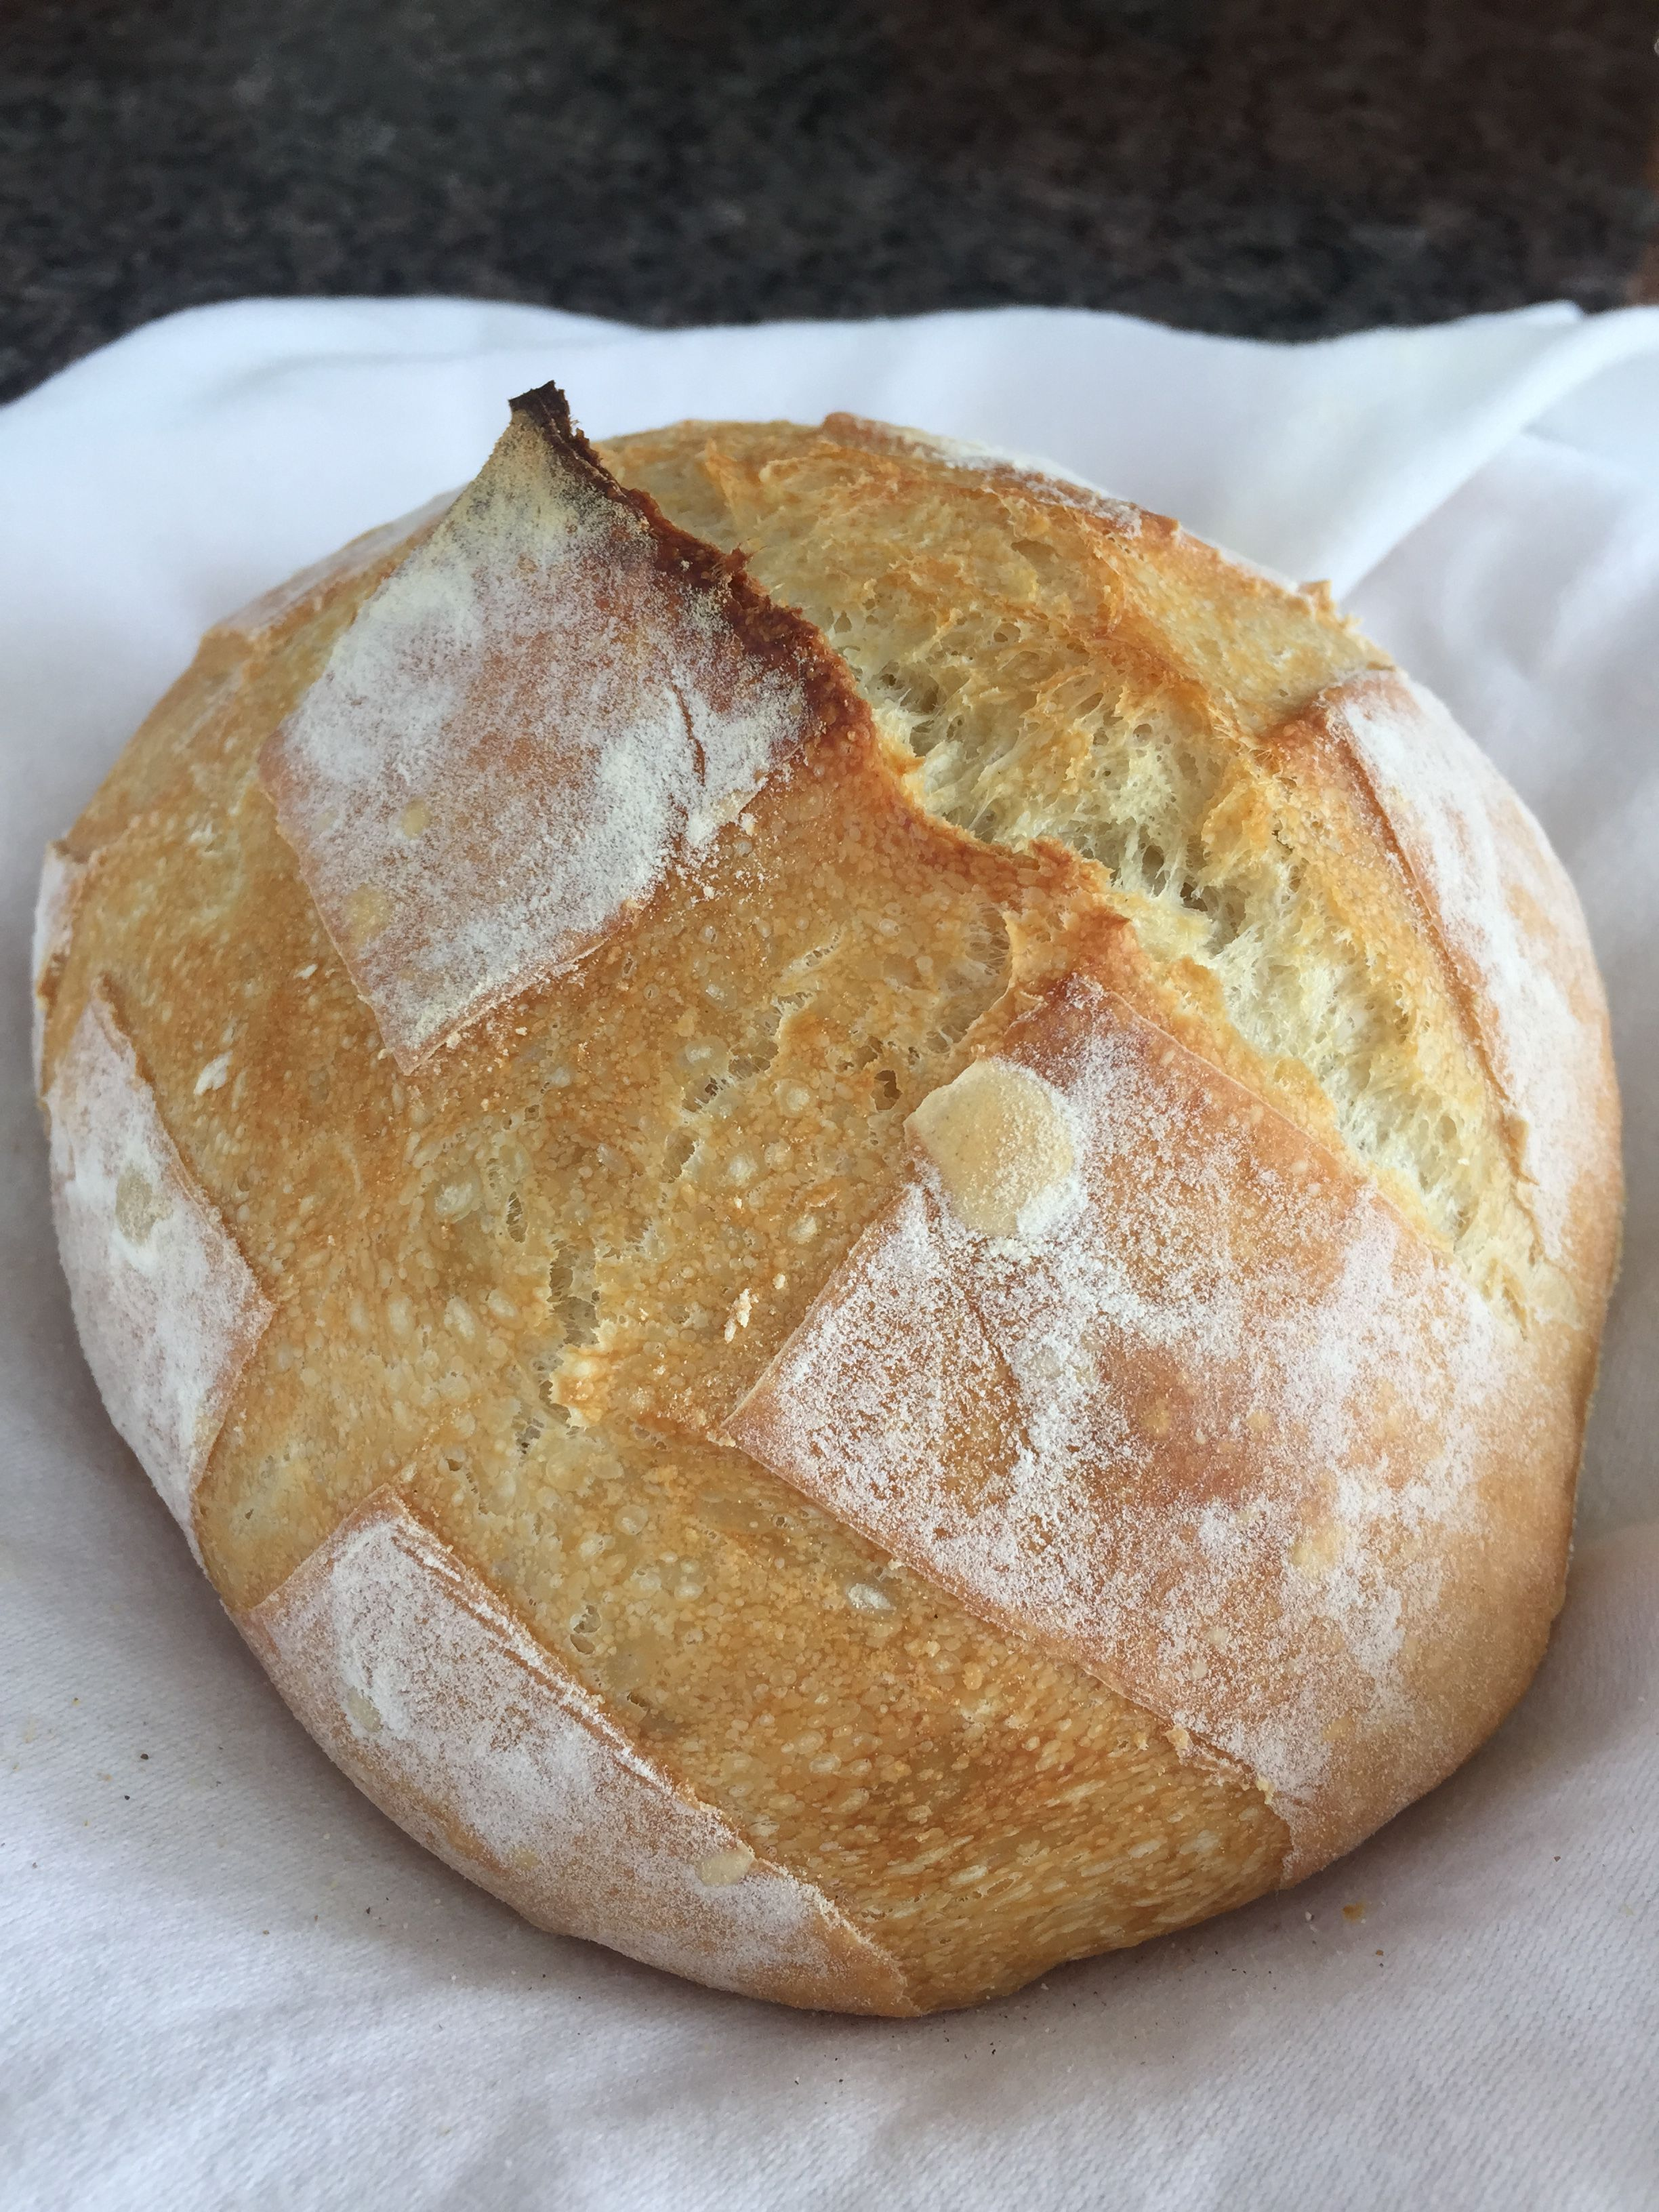 Perfectly crusty on the outside and chewy on the inside artisan bread.